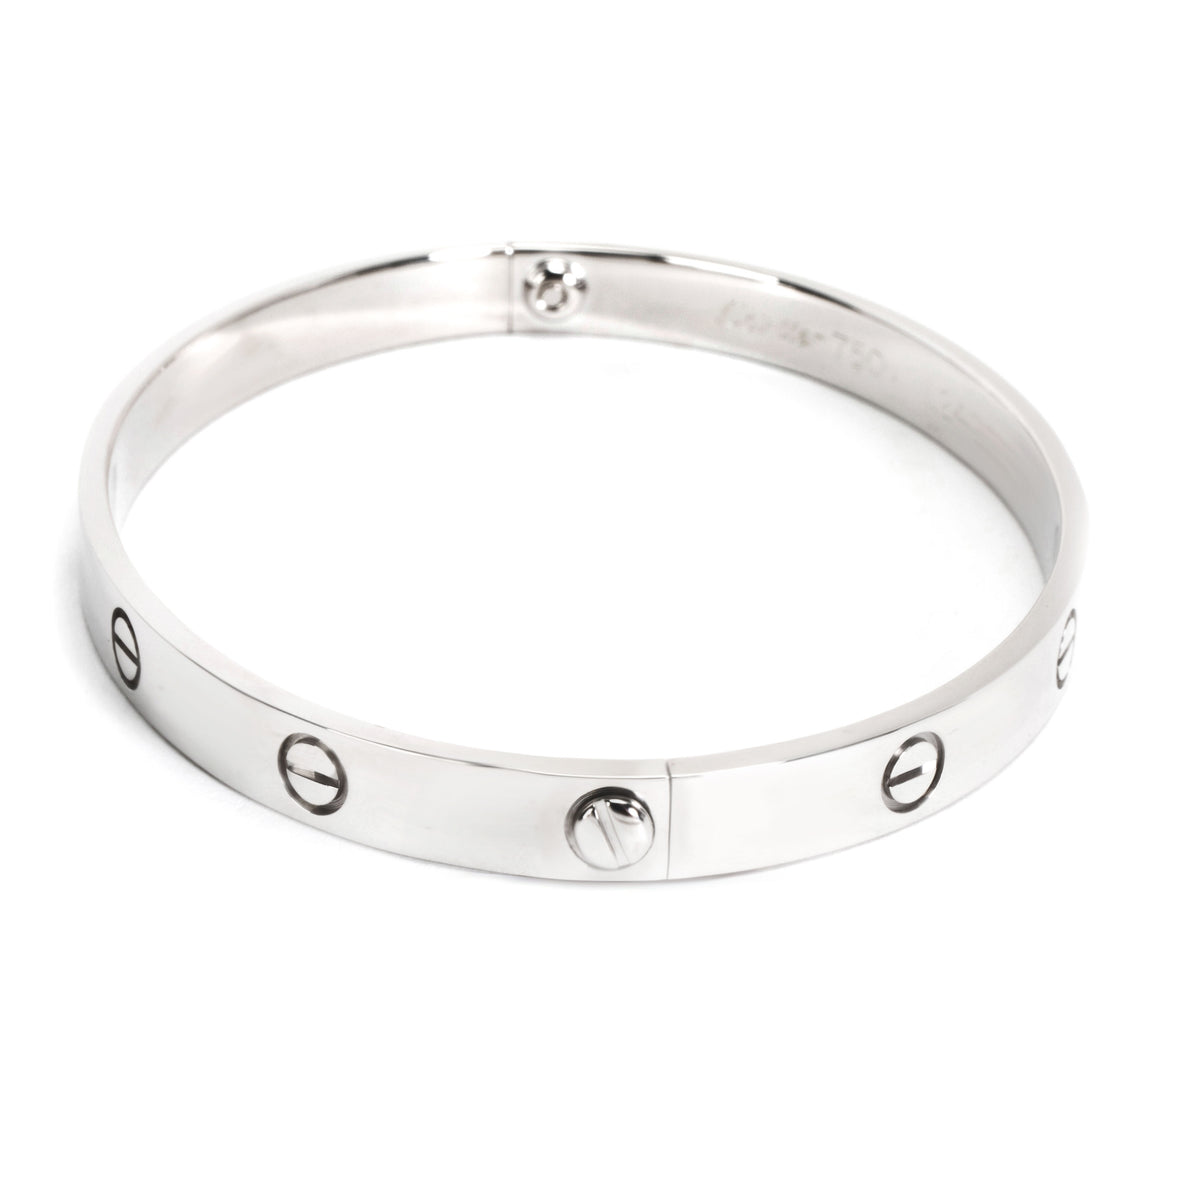 Cartier Love Bracelet in 18K White Gold (Size 20)